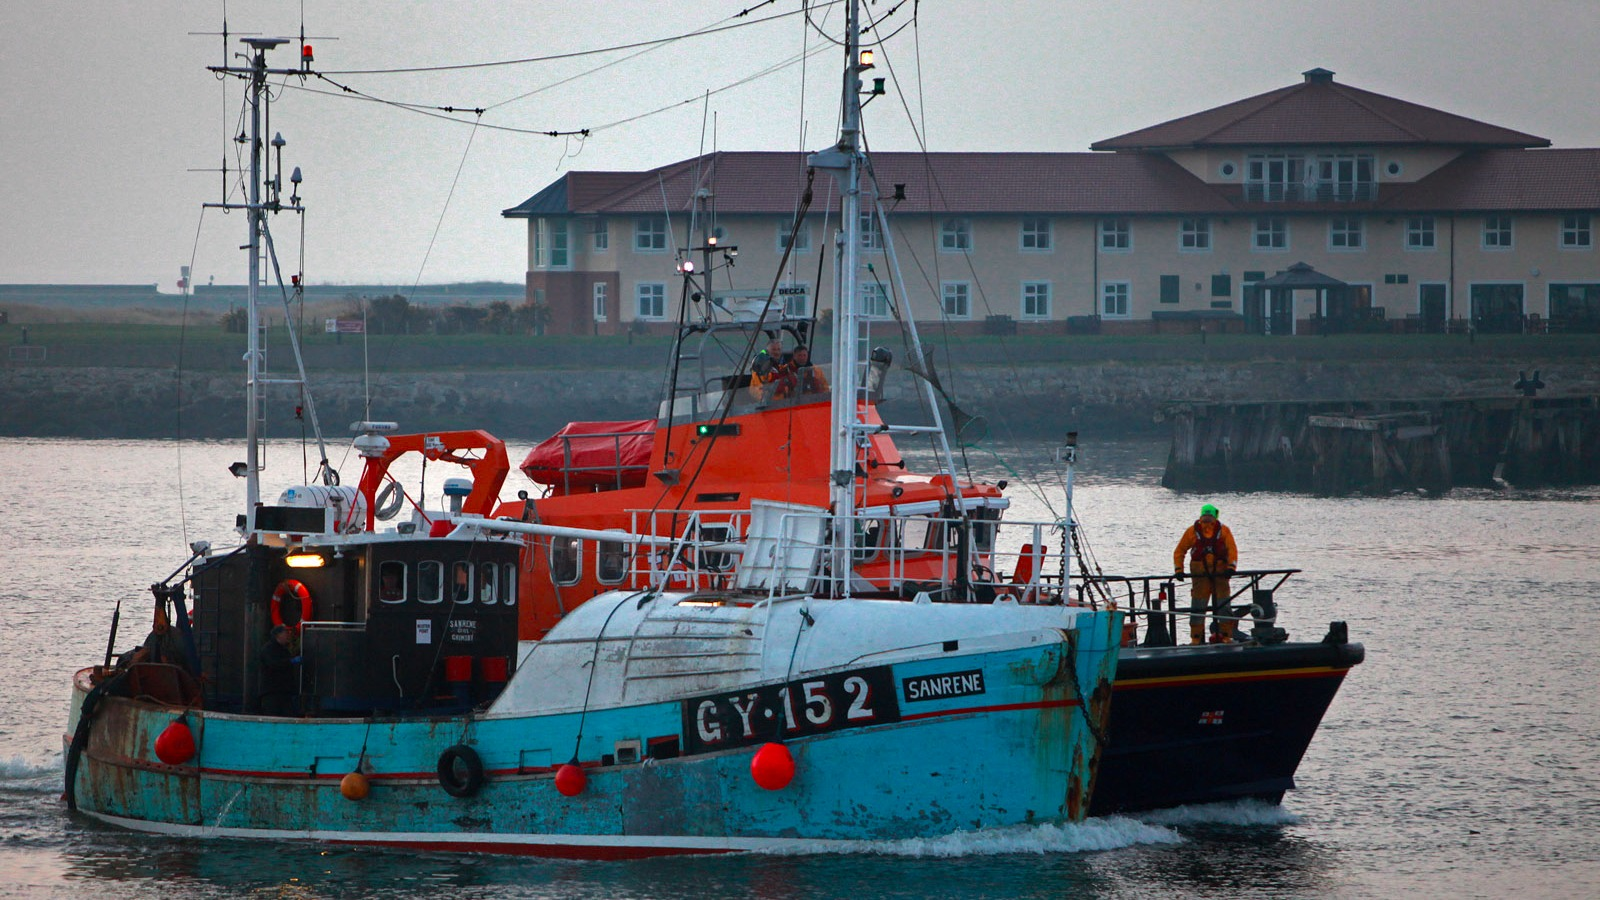 Fishing boat rescued by tynemouth rnli in all night 120 for Round fishing boat